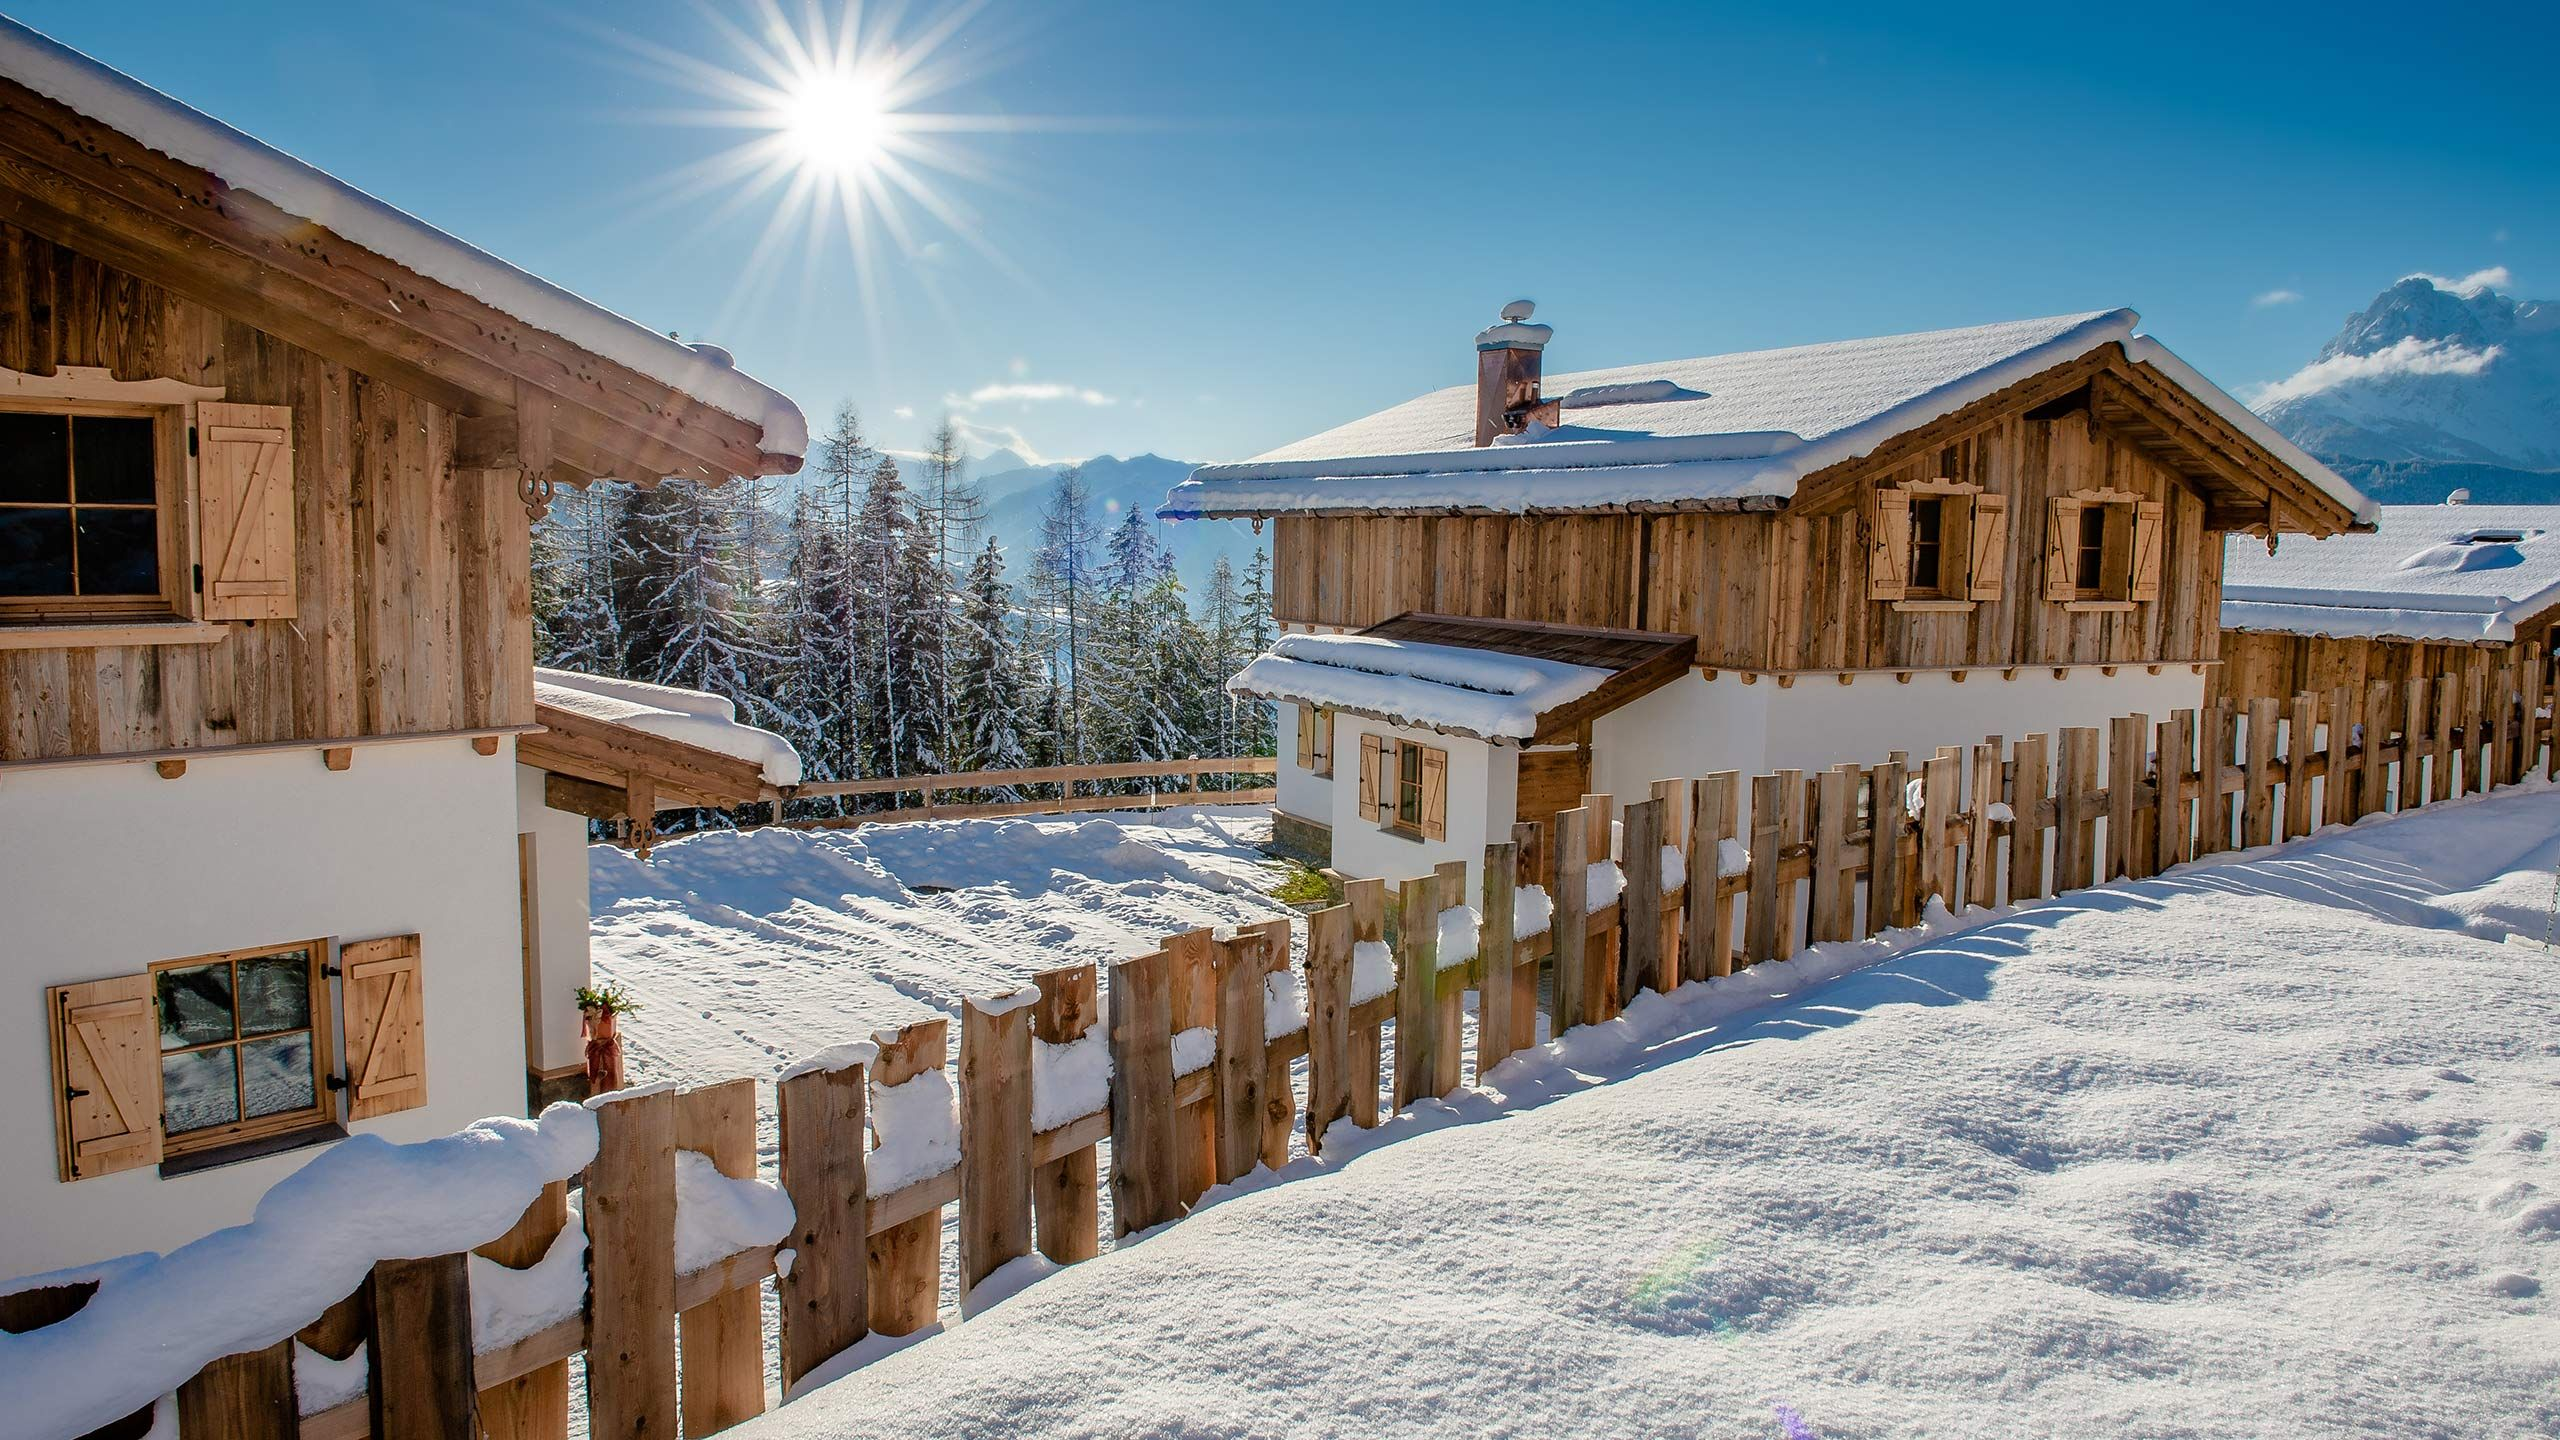 View of two Eulersberg chalets. Winter atmosphere, sun is shining.